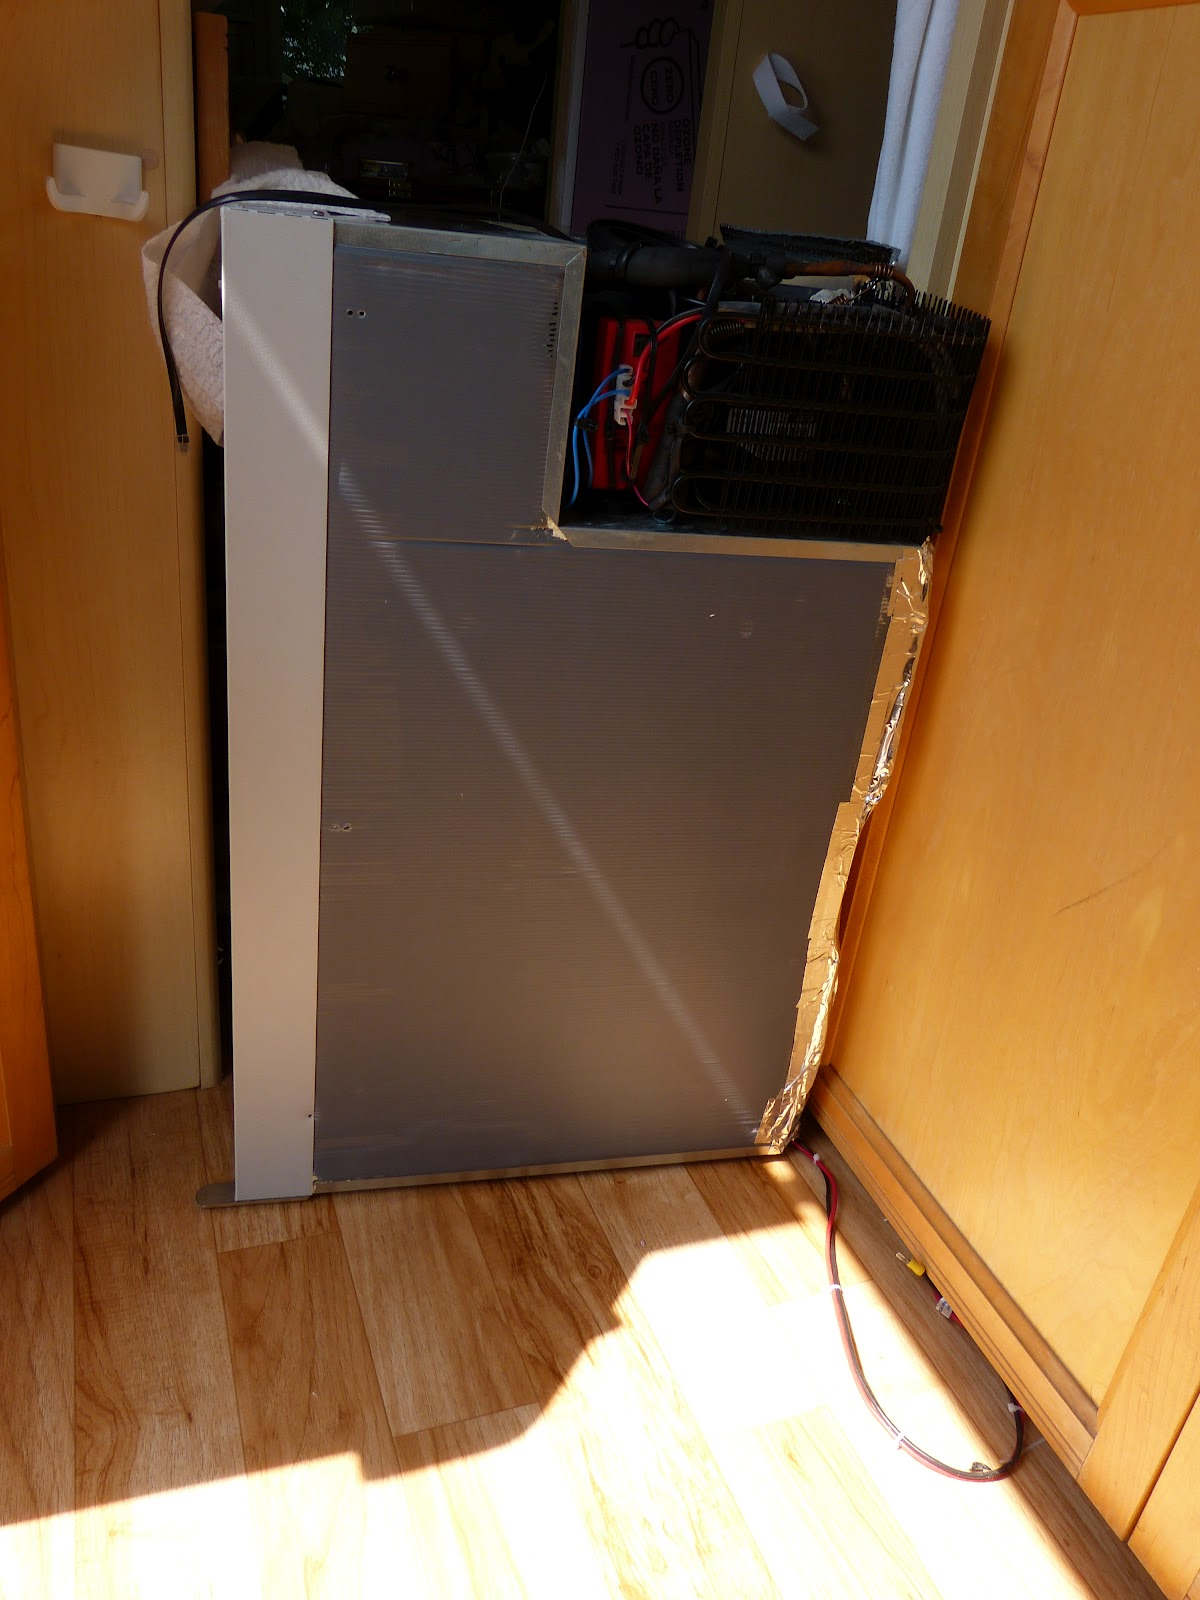 The Original Construction Of Cavity In My Van Had A 3 Deep Shelf Support Back Meant To Provide Seal For Old Propane Refrigerator